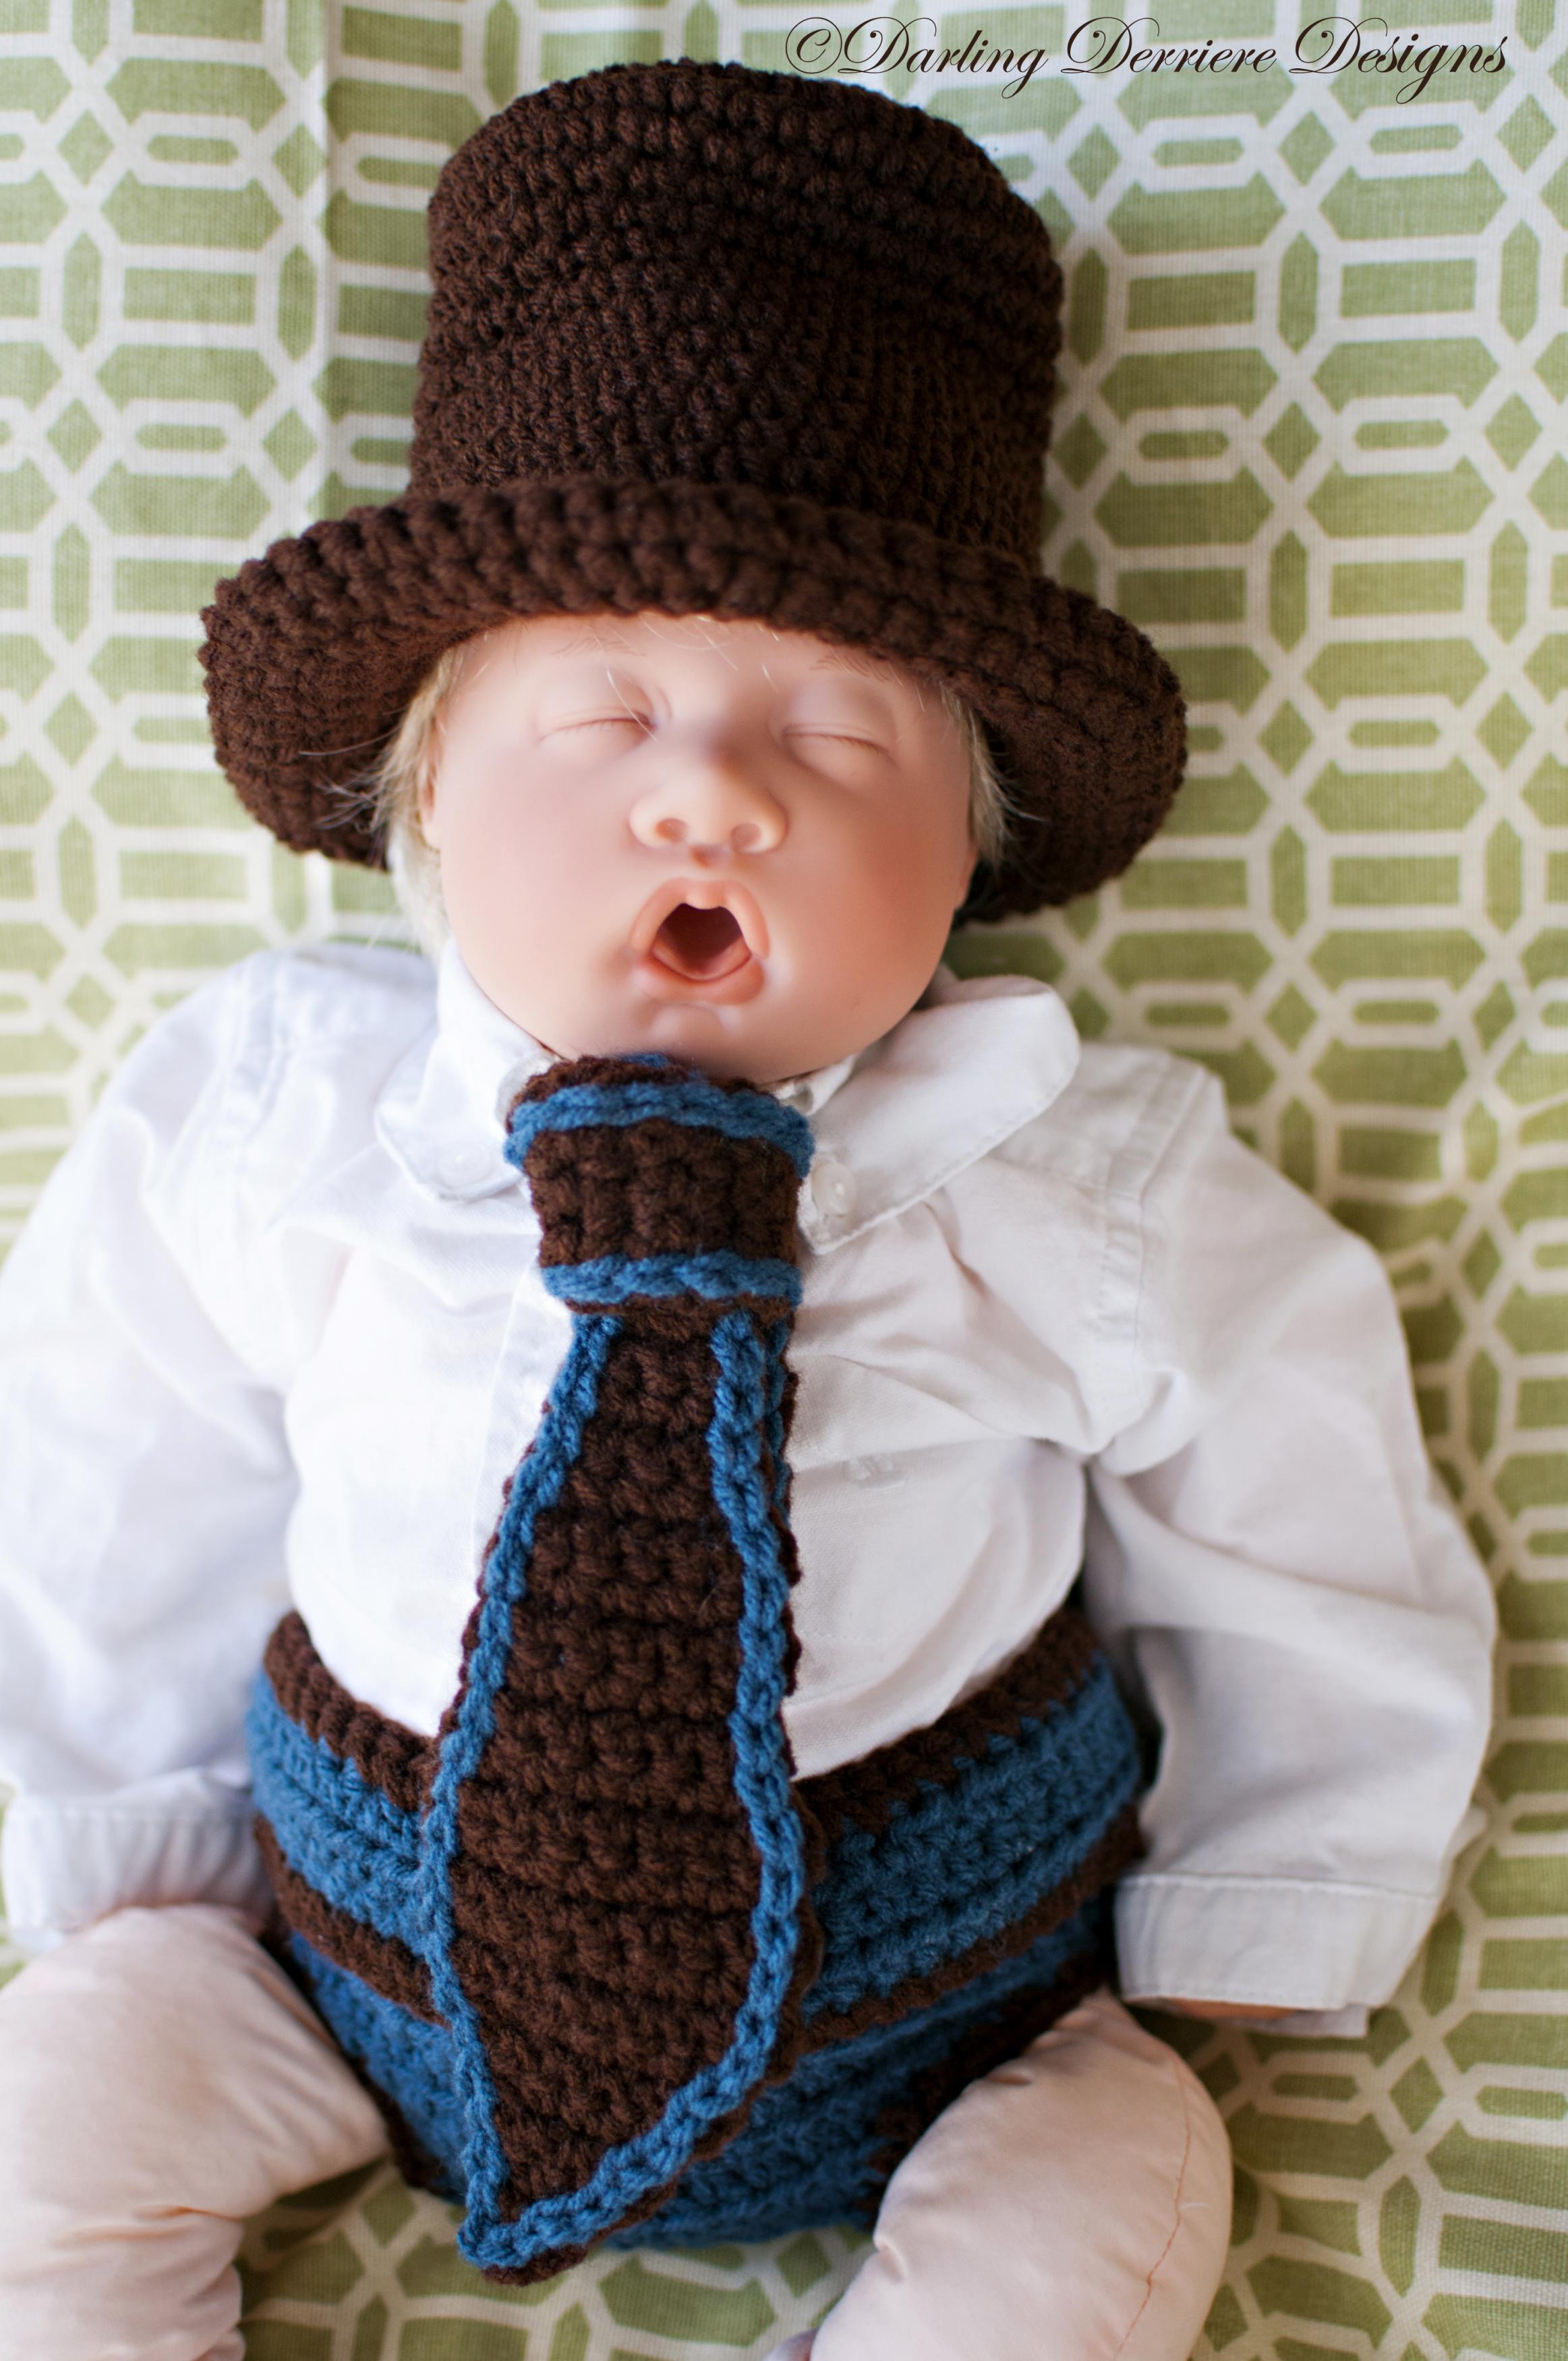 Beautiful top Hat Tie and button Strap Diaper Cover Crochet Crochet Baby Diaper Cover Of Wonderful 48 Photos Crochet Baby Diaper Cover